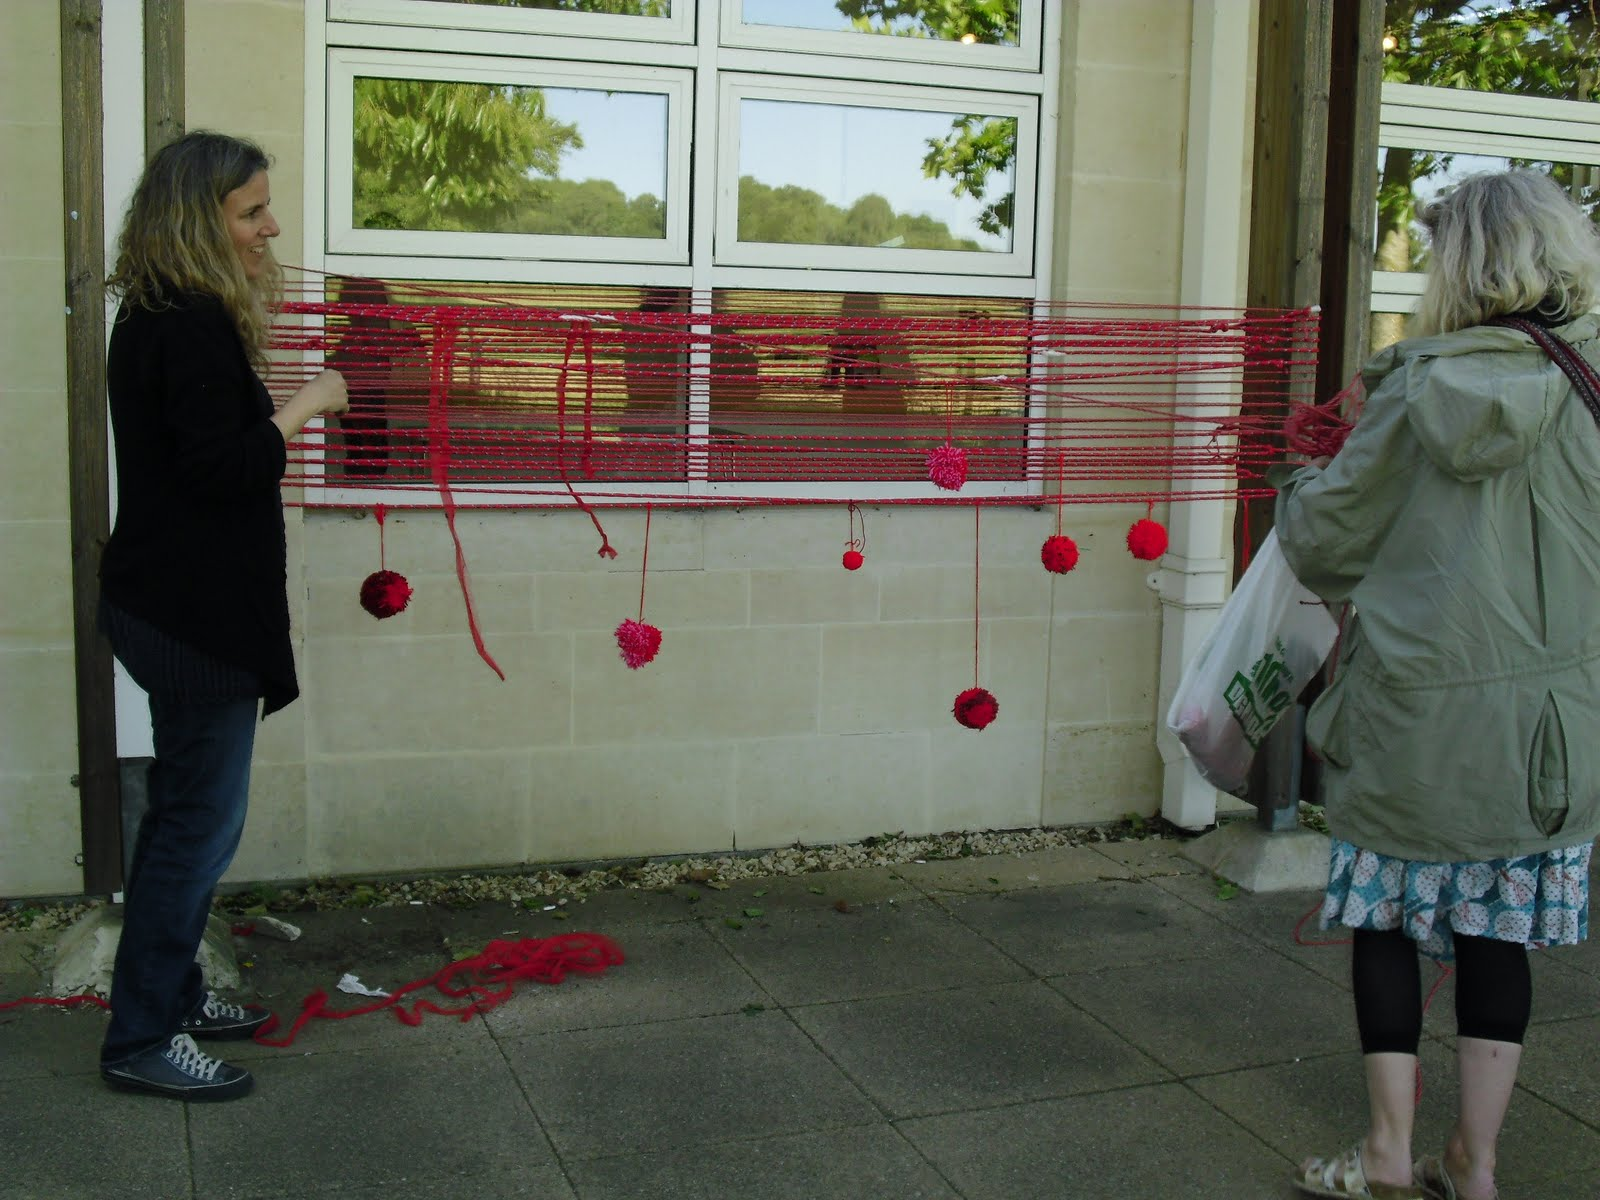 Creative Thinkers: Day 352: My Guerilla Knitting Experience